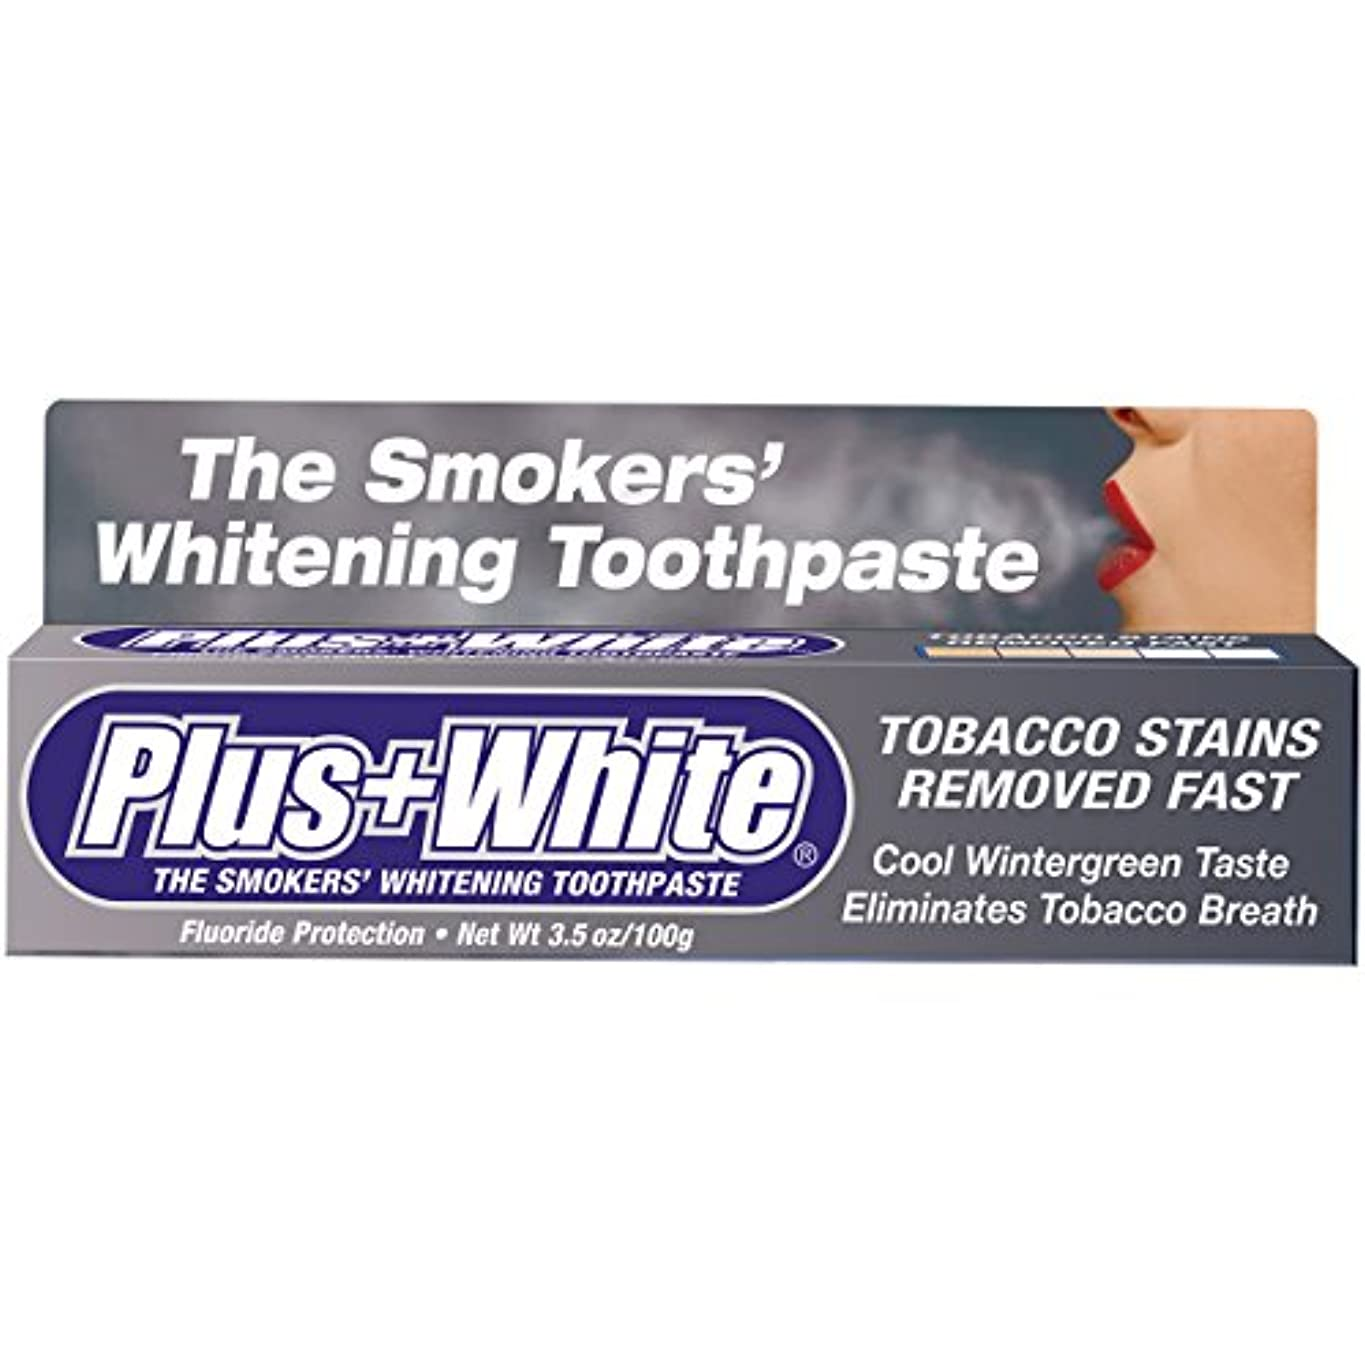 アナリストロースト逃れるPlus White, The Smokers' Whitening Toothpaste, Cooling Peppermint Flavor, 3.5 oz (100 g)